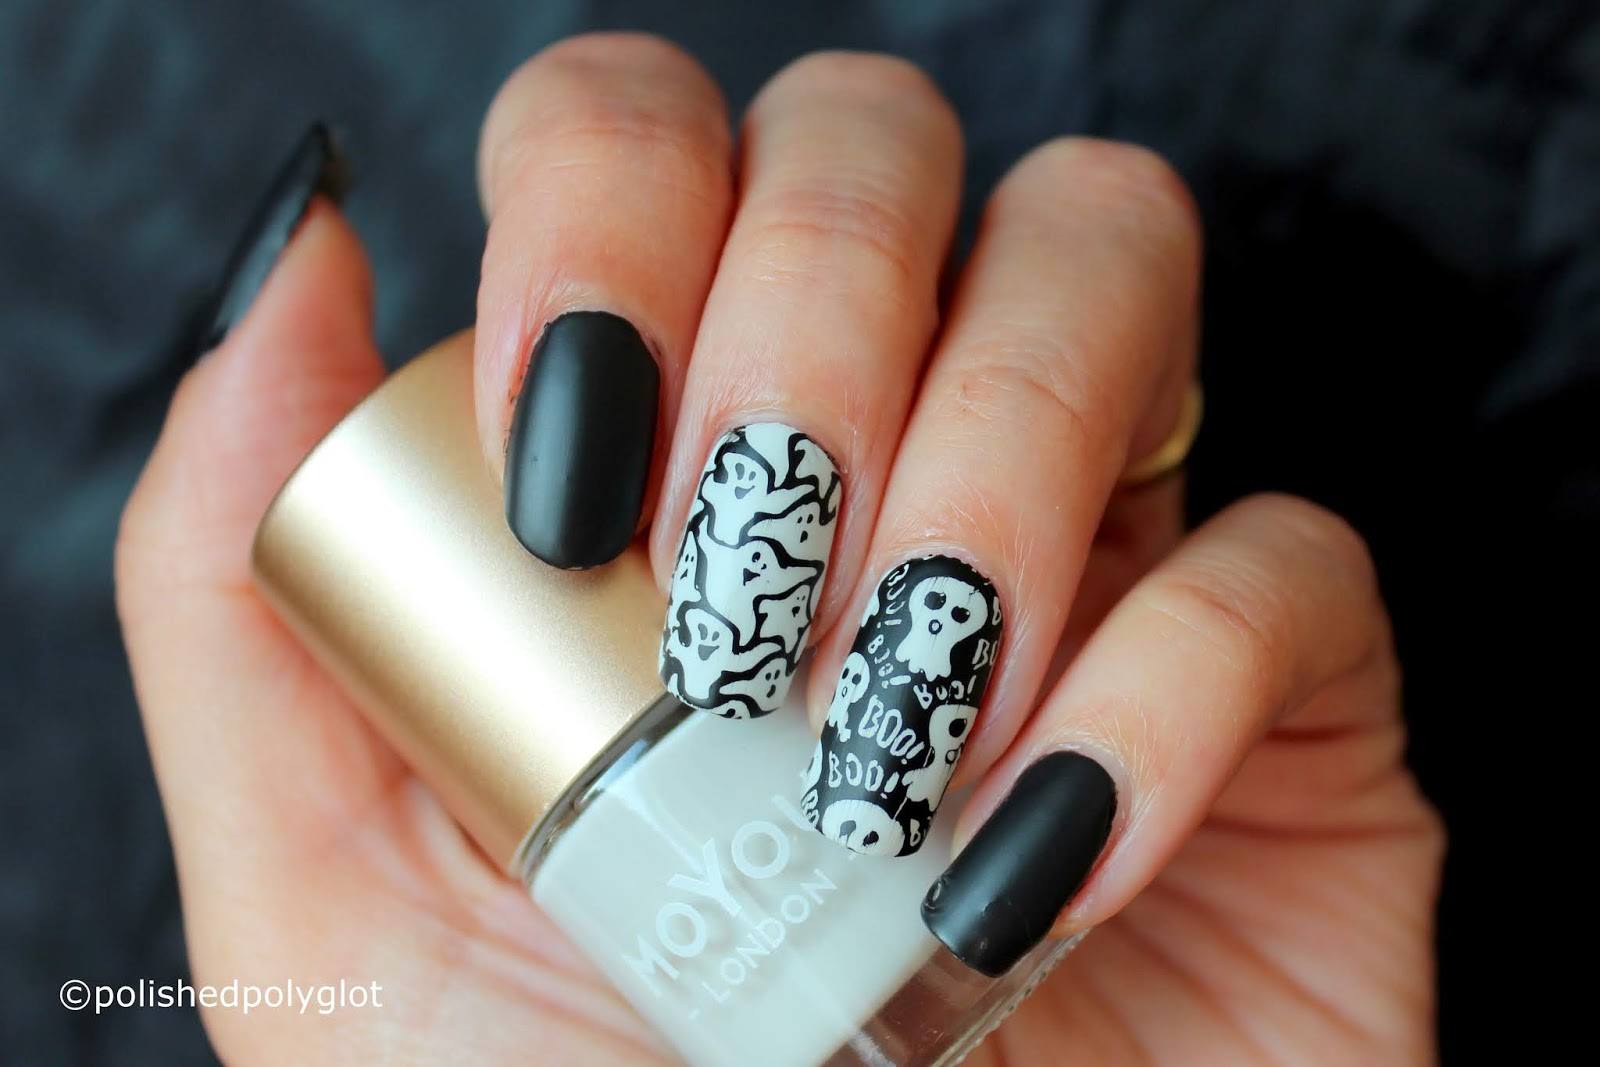 Nail Art Halloween Manicure With Ghosts Polished Polyglot